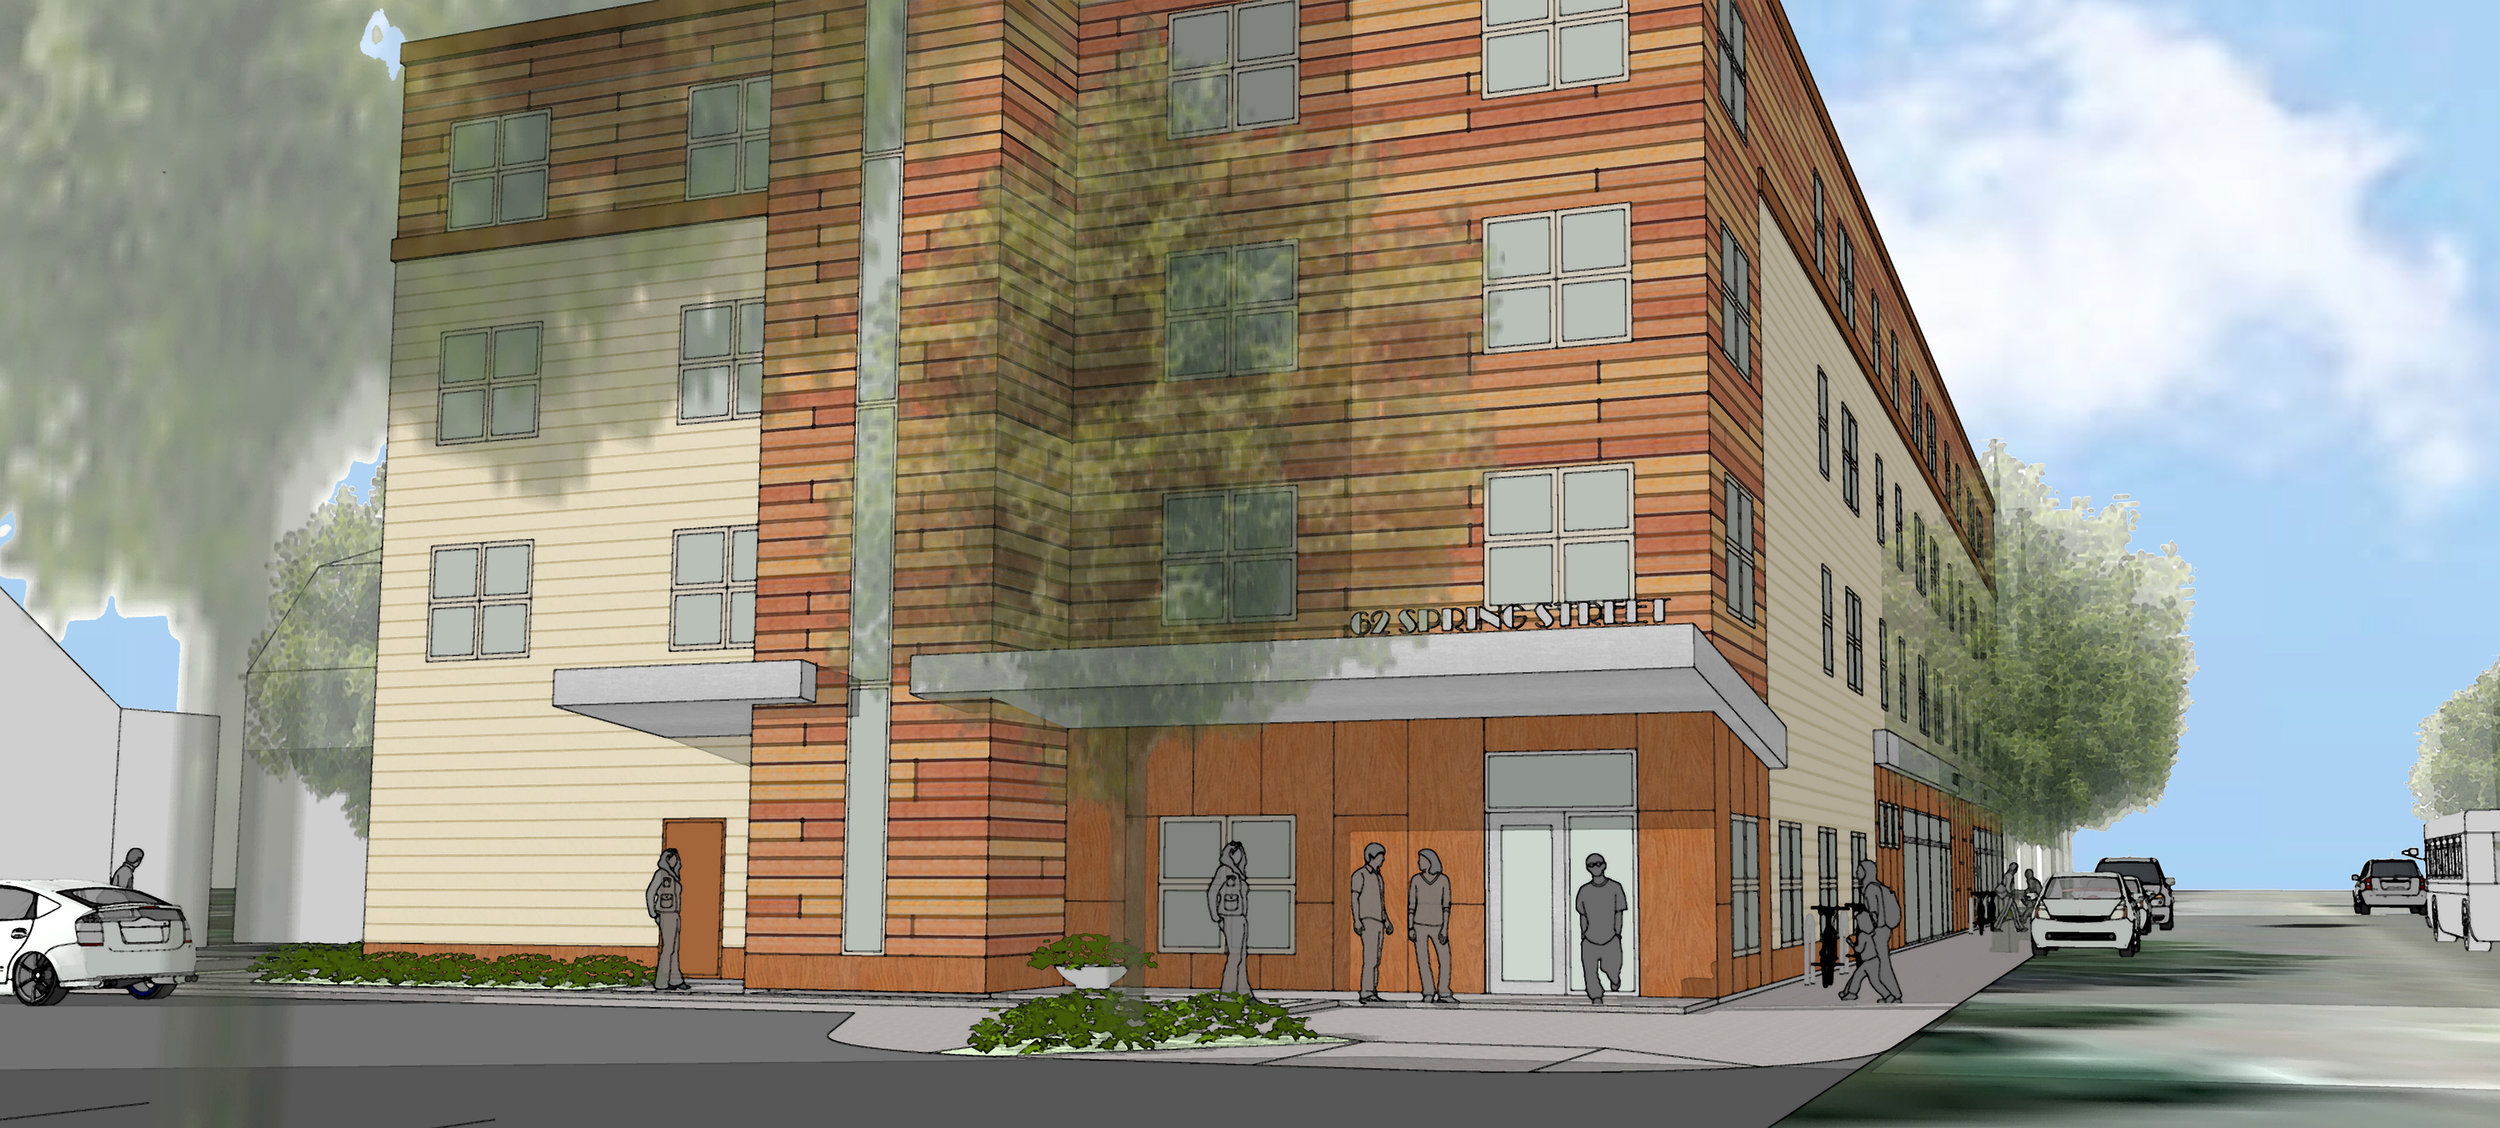 This new 4-story apartment building will introduce 41 market rate apartments and a small retail space just down the street from a new public transportation terminal.